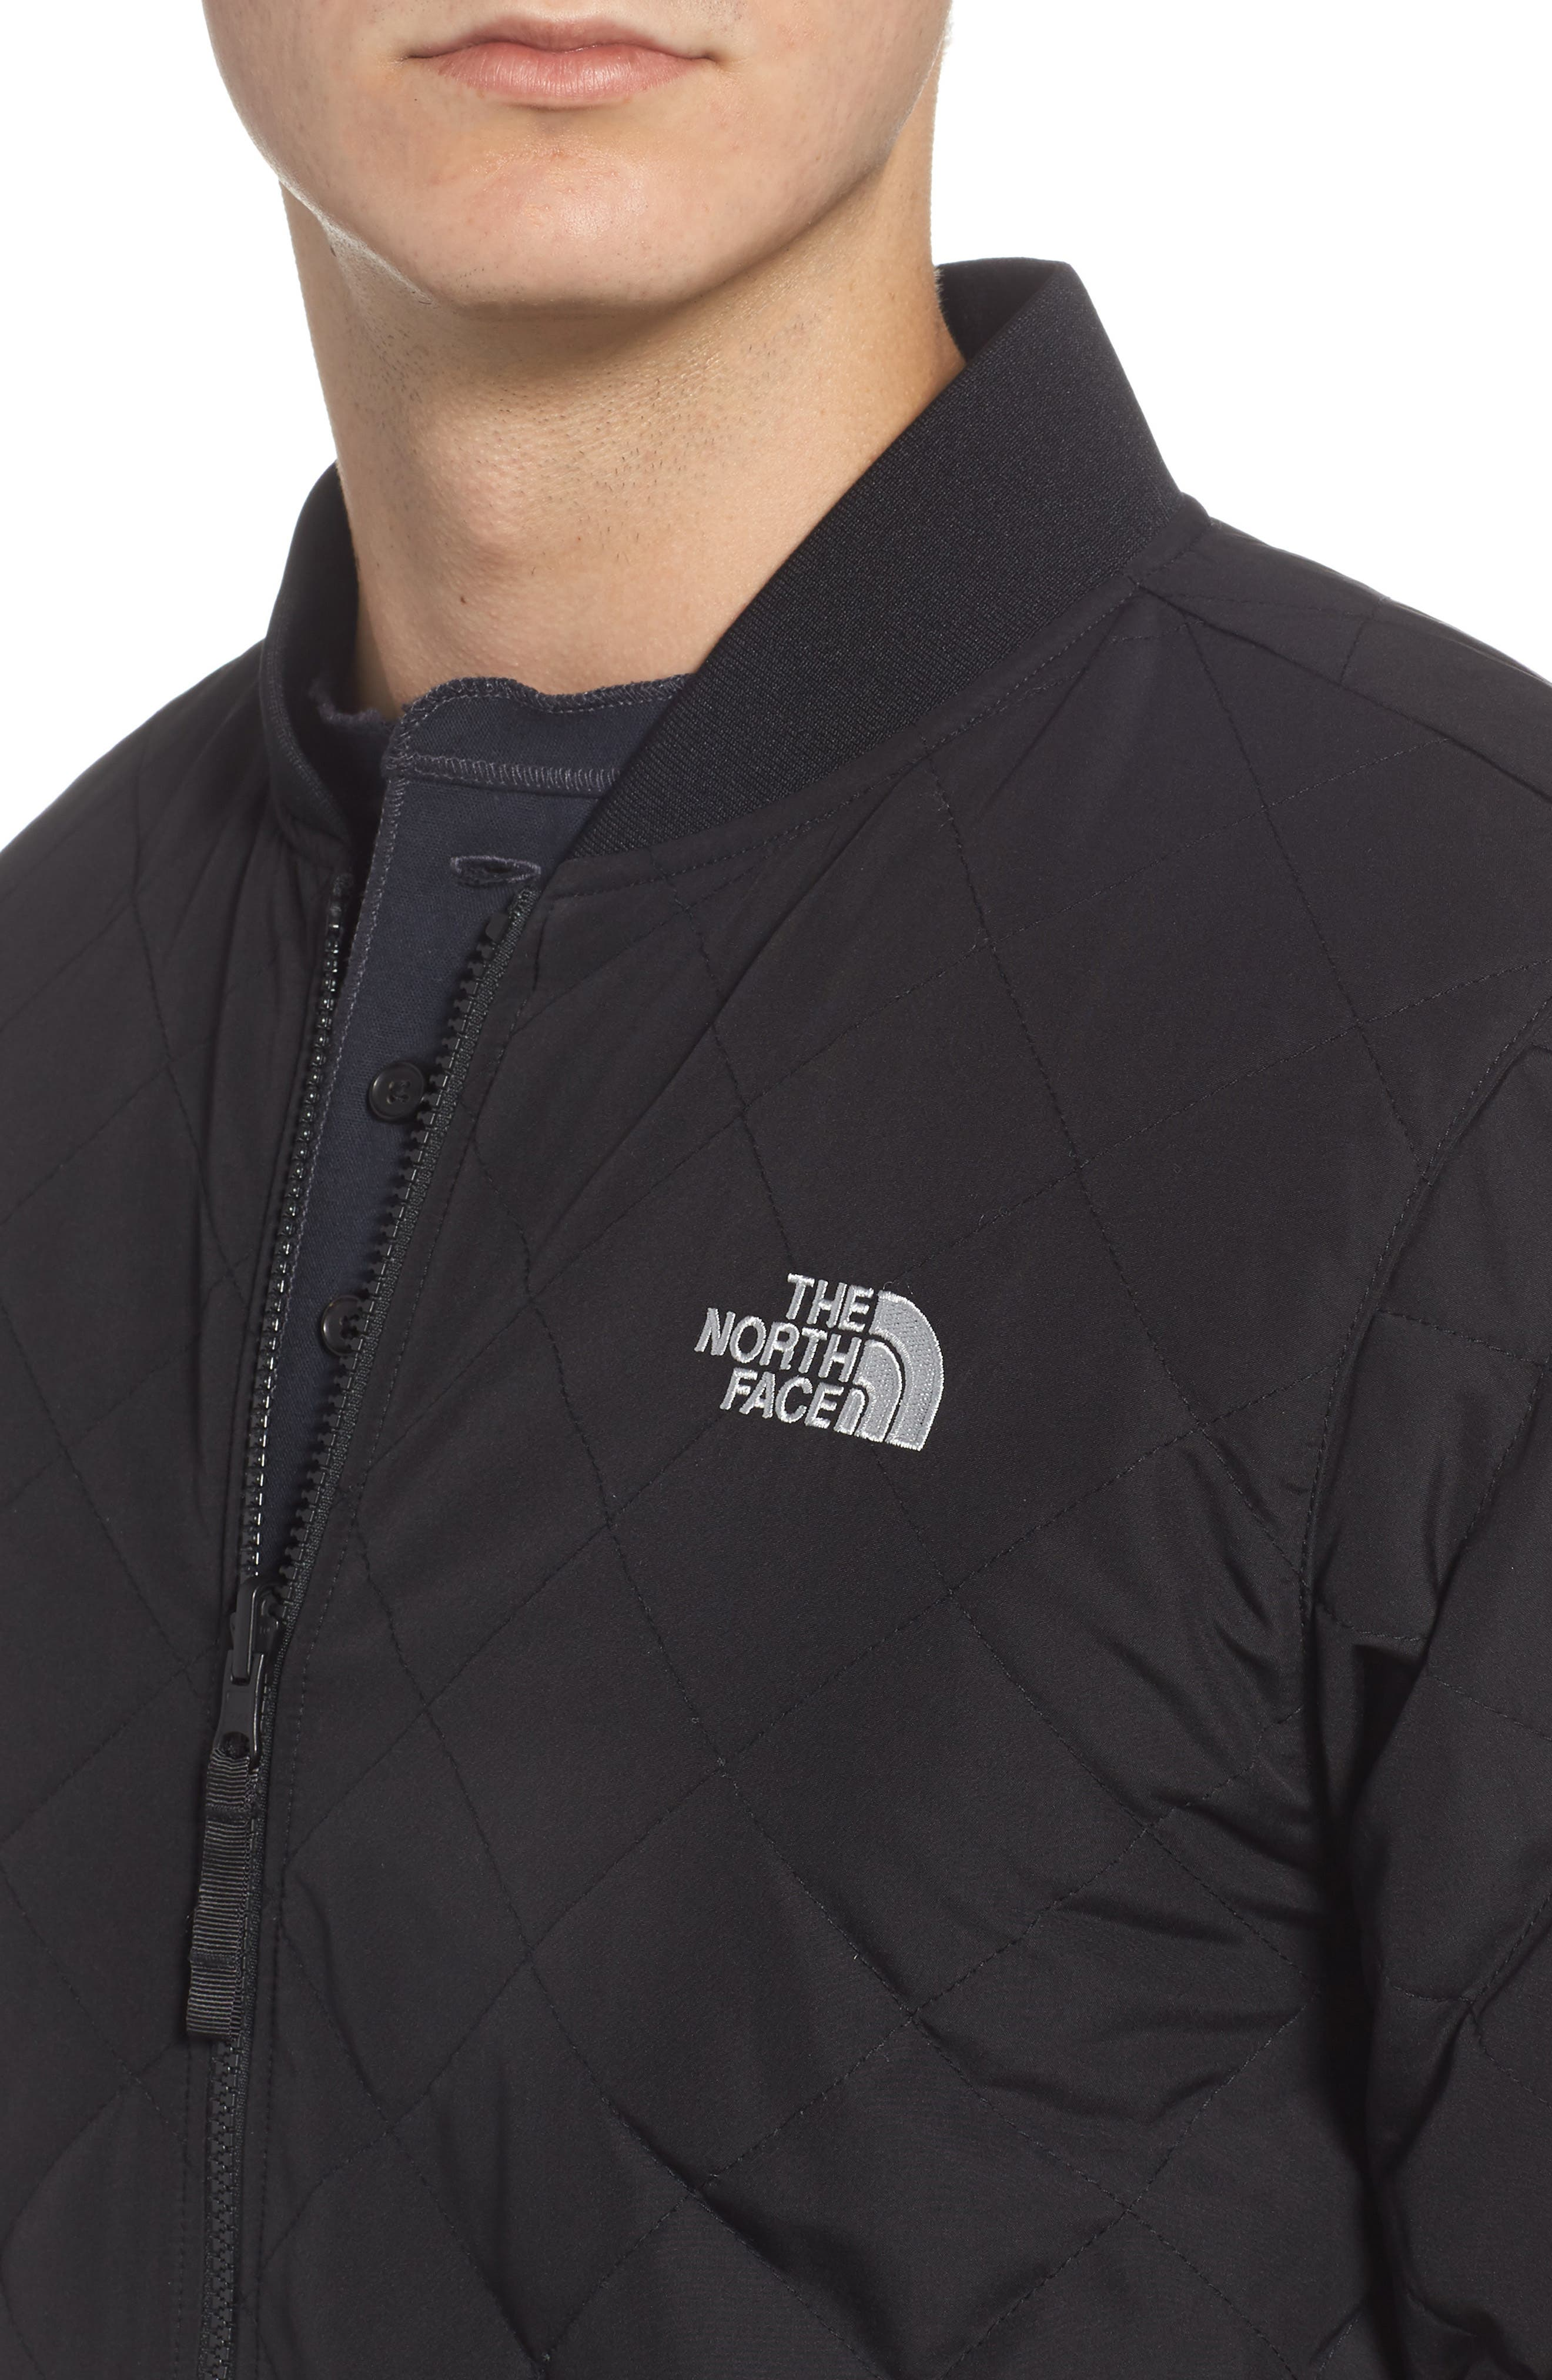 Jester Reversible Bomber Jacket,                             Alternate thumbnail 6, color,                             TNF BLACK